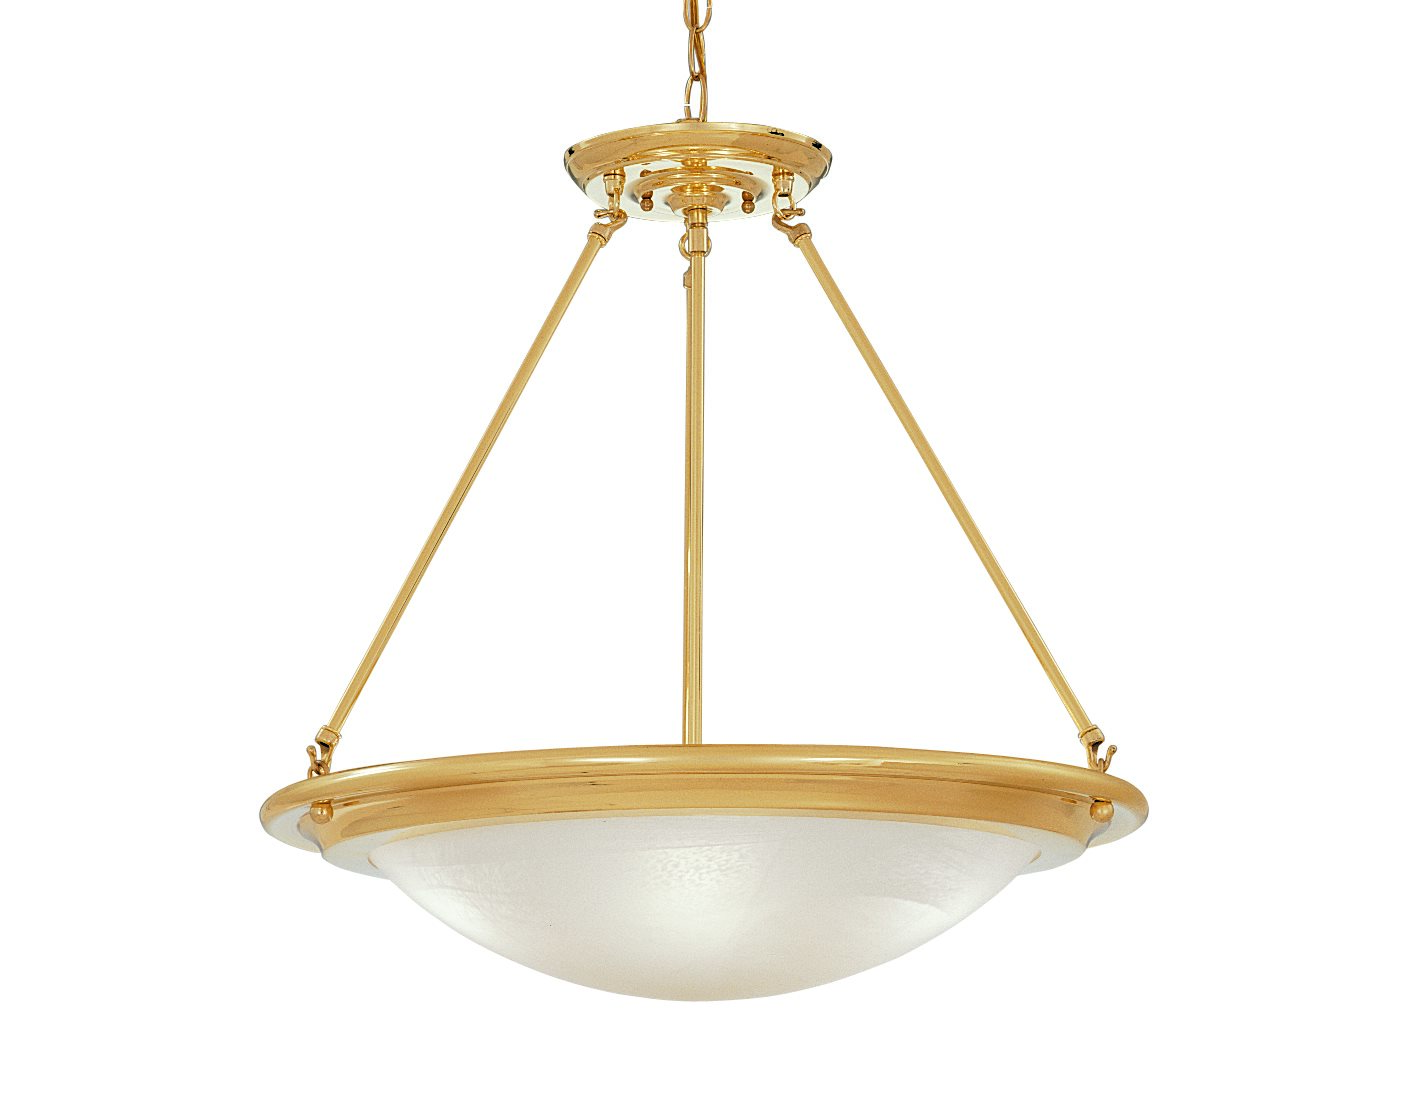 Arcadian home home decor and accessories wall art wall decor table decor accent furniture light fixtures lamps